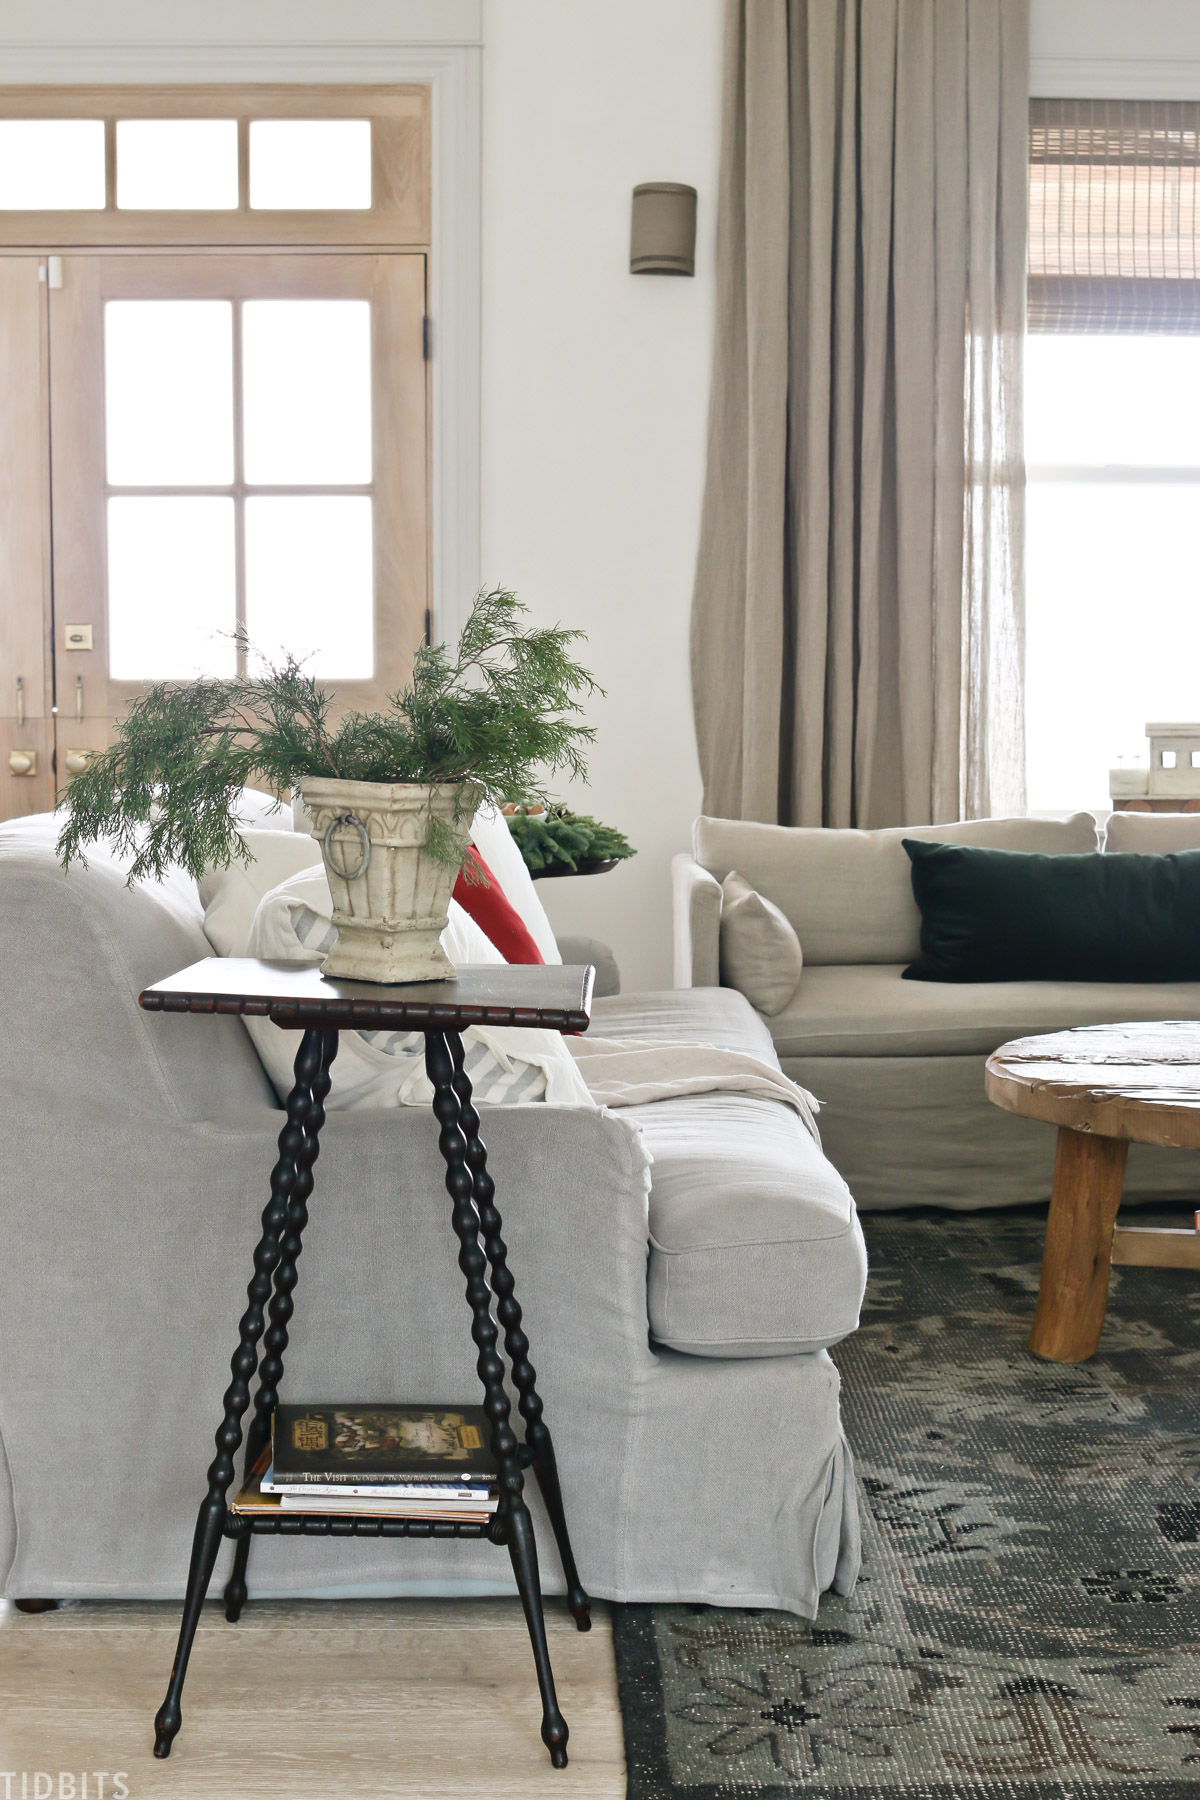 living room with European Old World Christmas decorations with arm chair, coffee table, and two couches